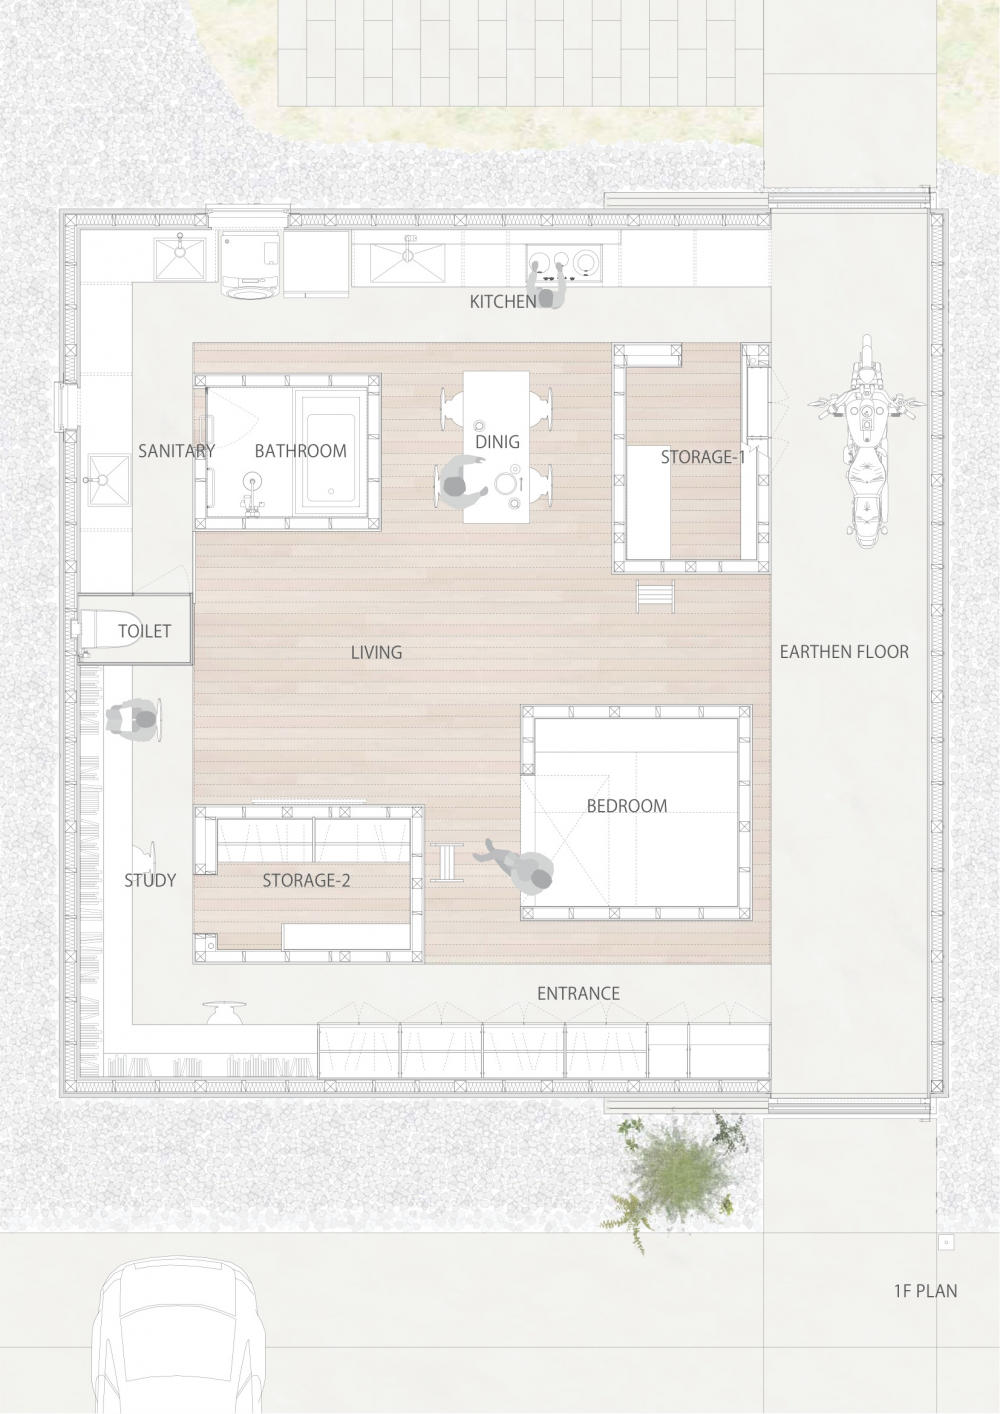 japanese house floorplan | Interior Design Ideas.